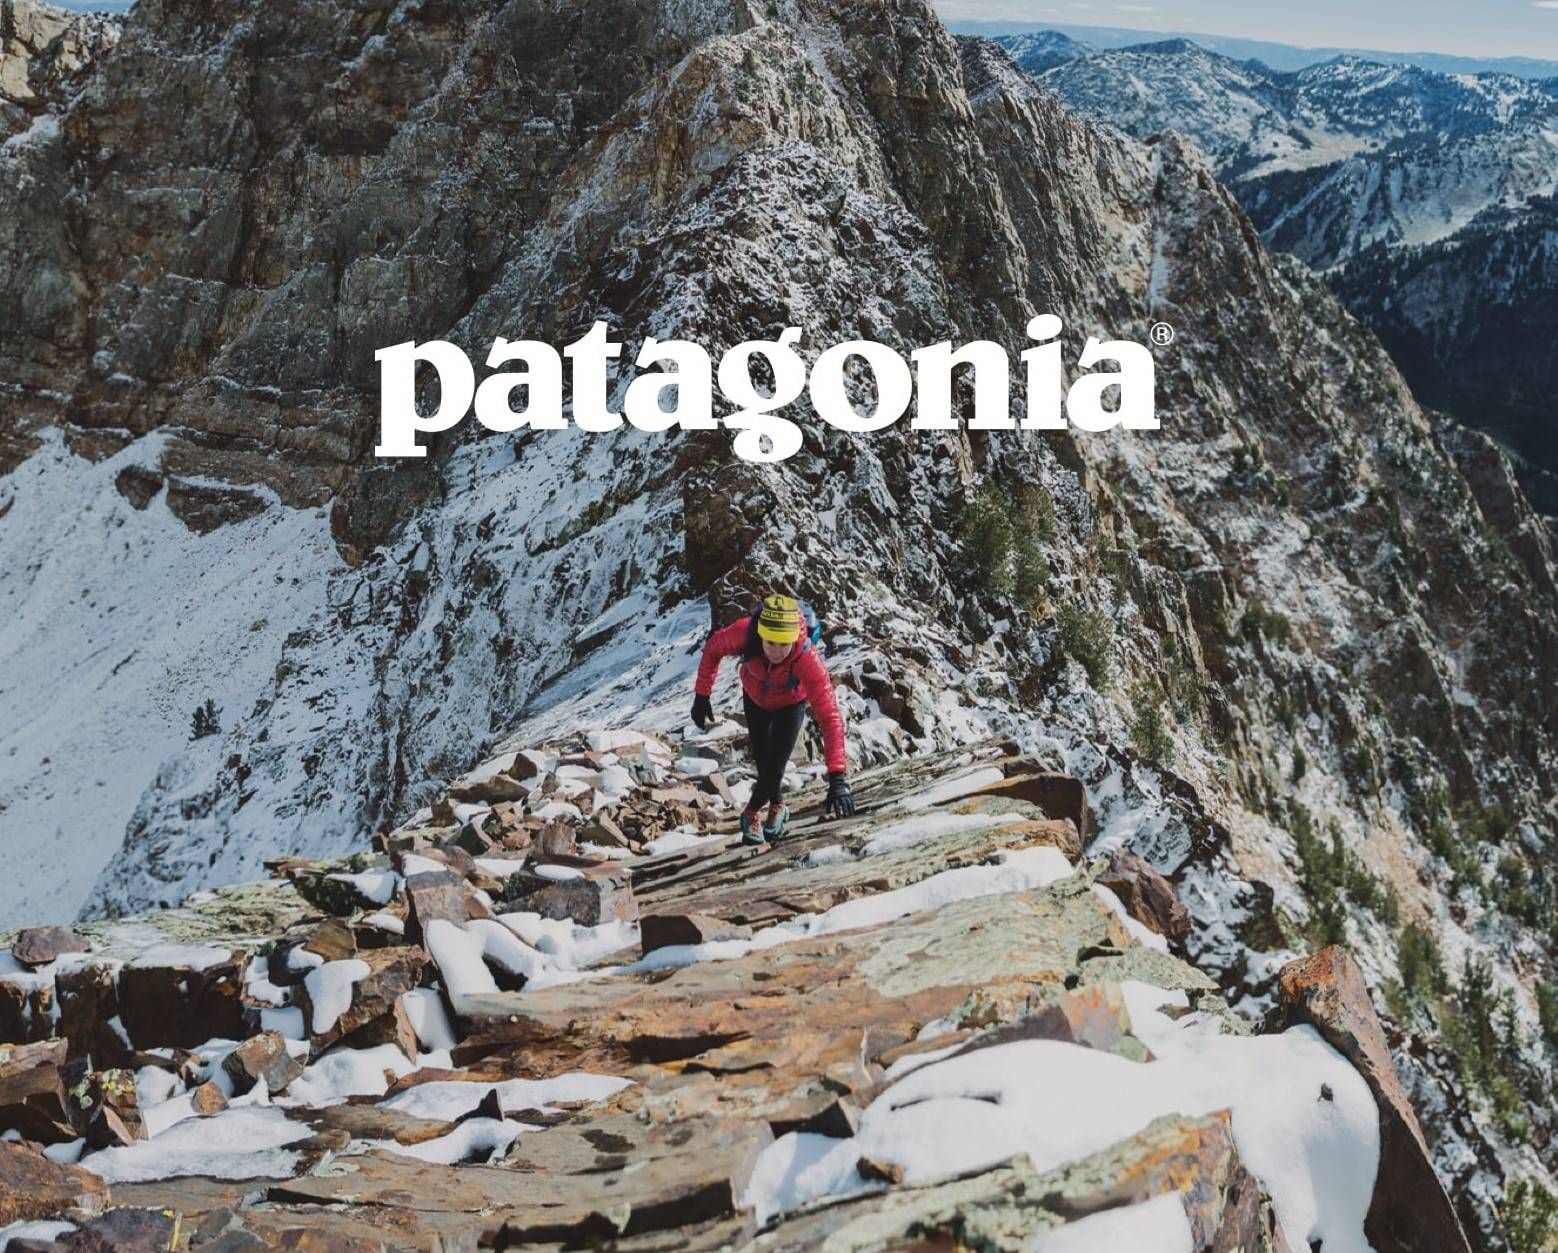 image of a woman climbing a snowy mountians, the word Patagonia